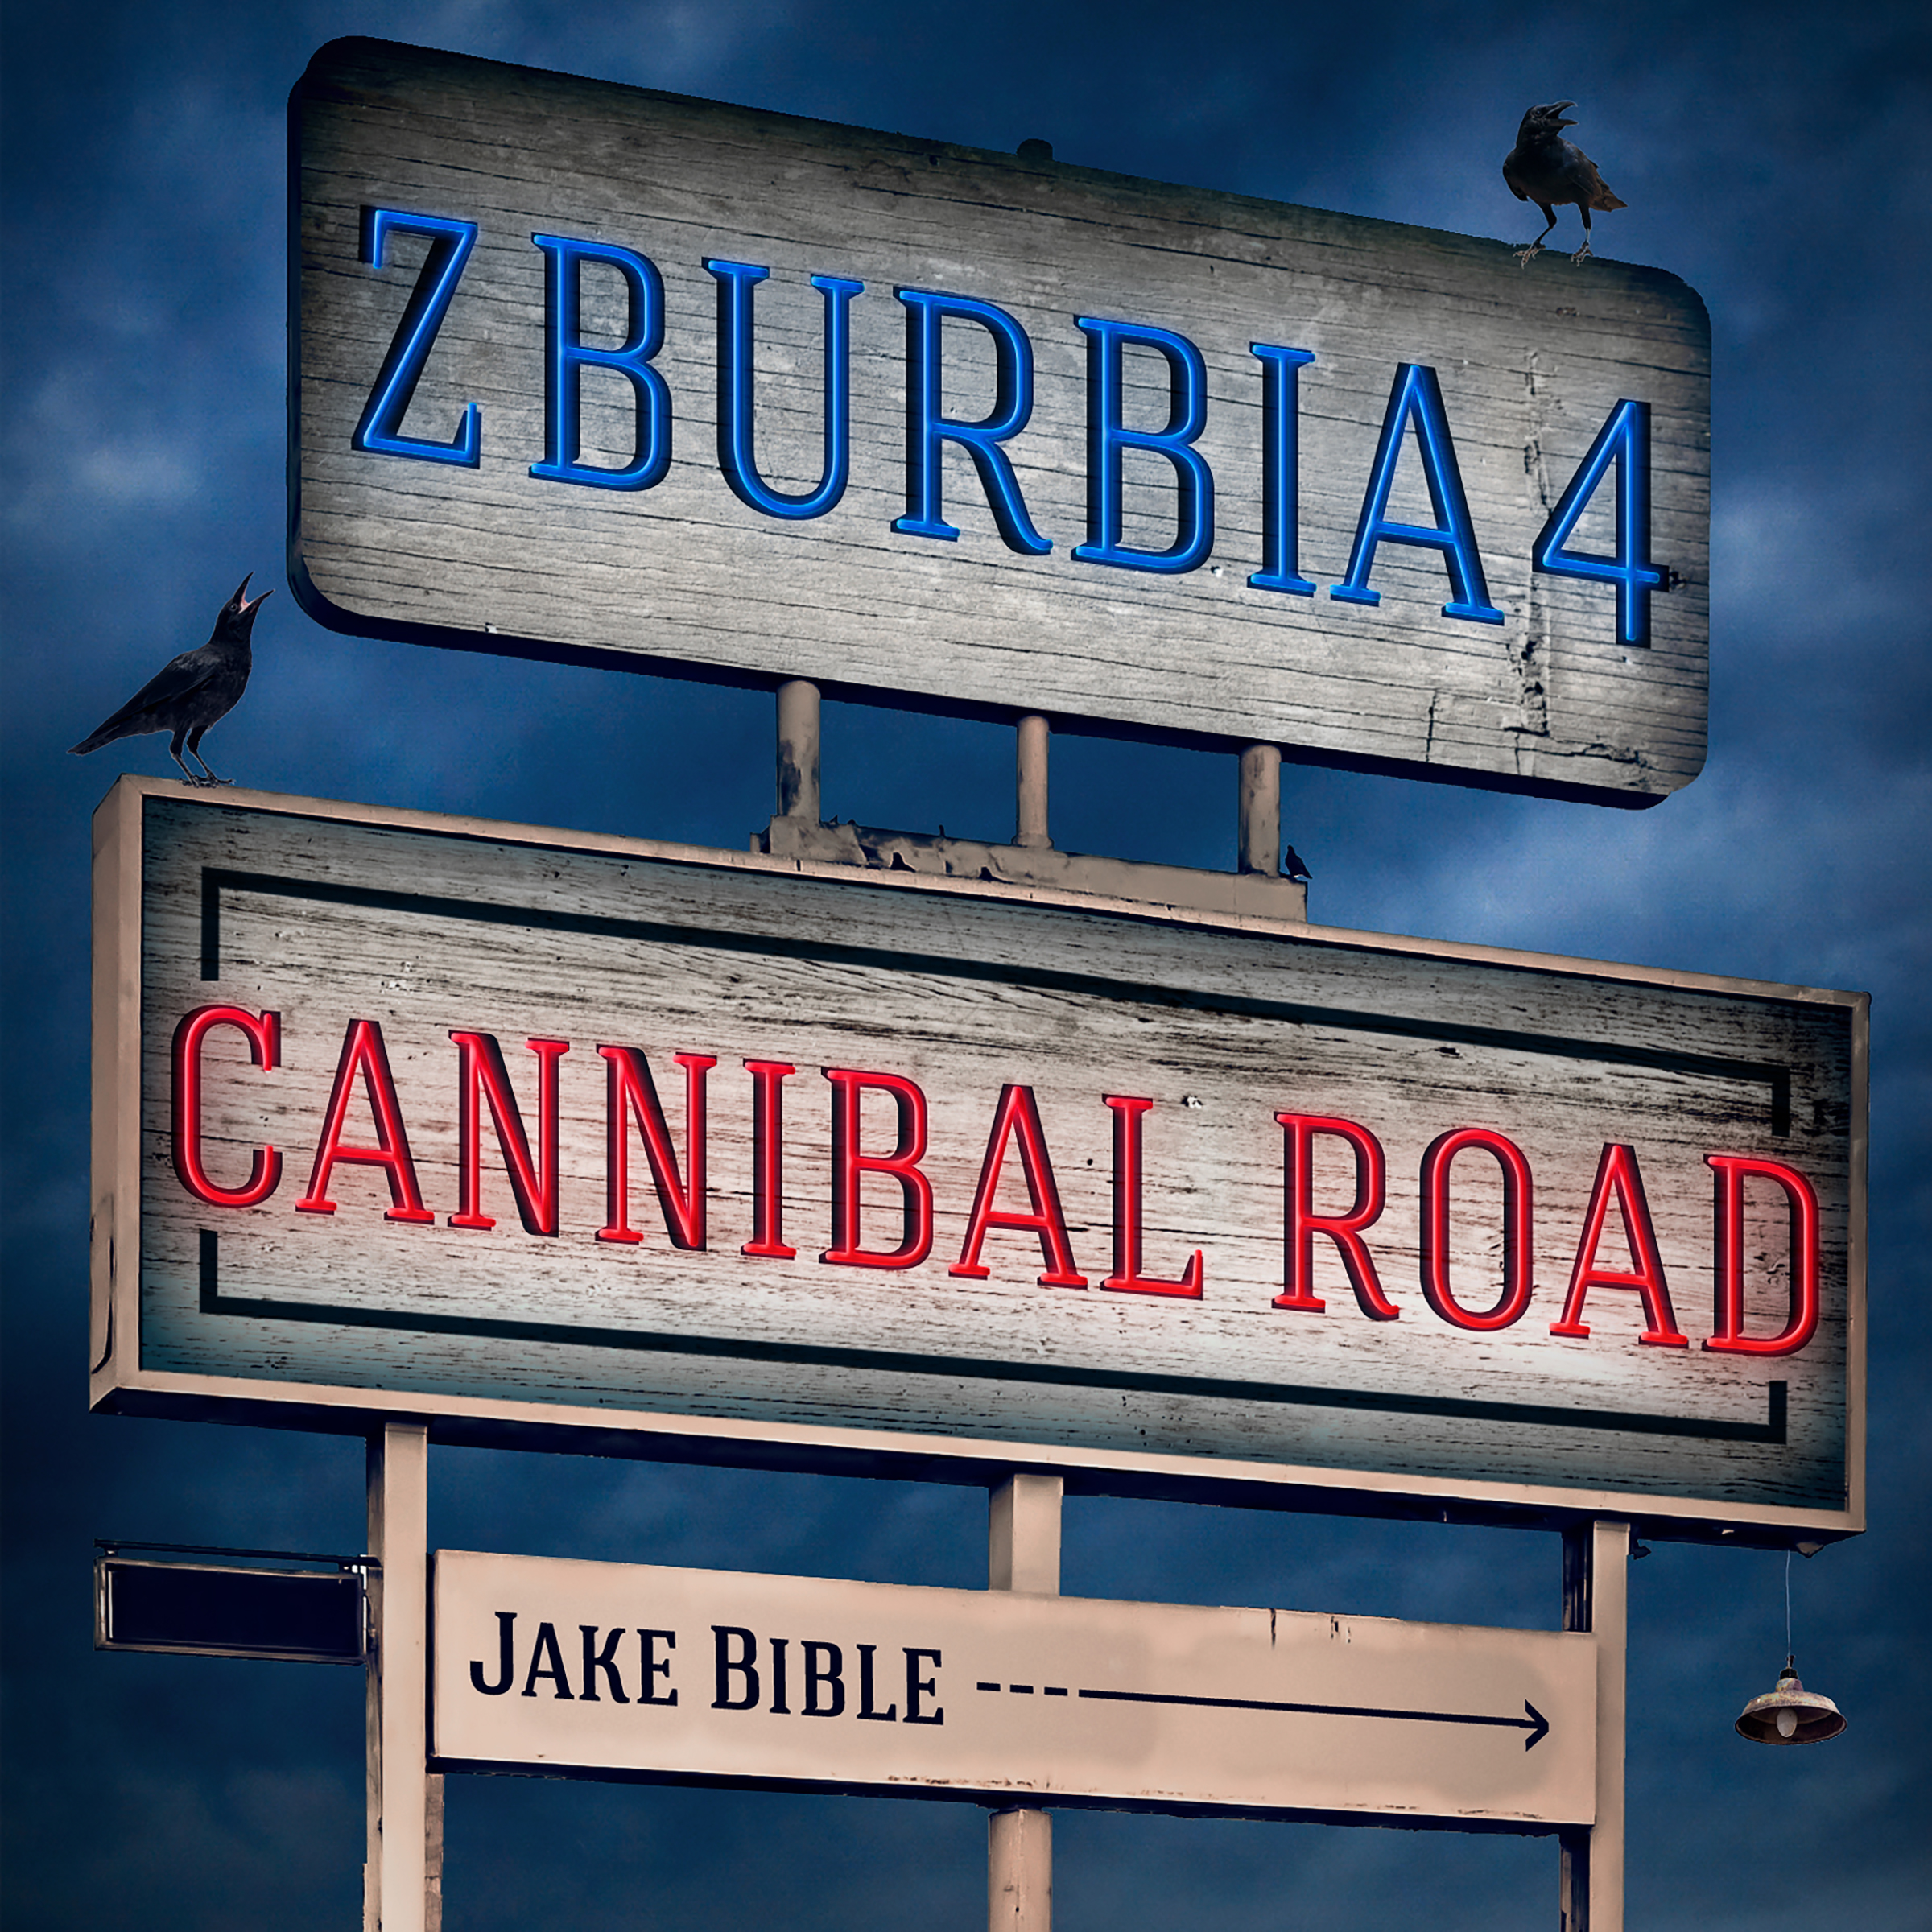 Z-Burbia 4: Cannibal Road | Jake Bible Fiction